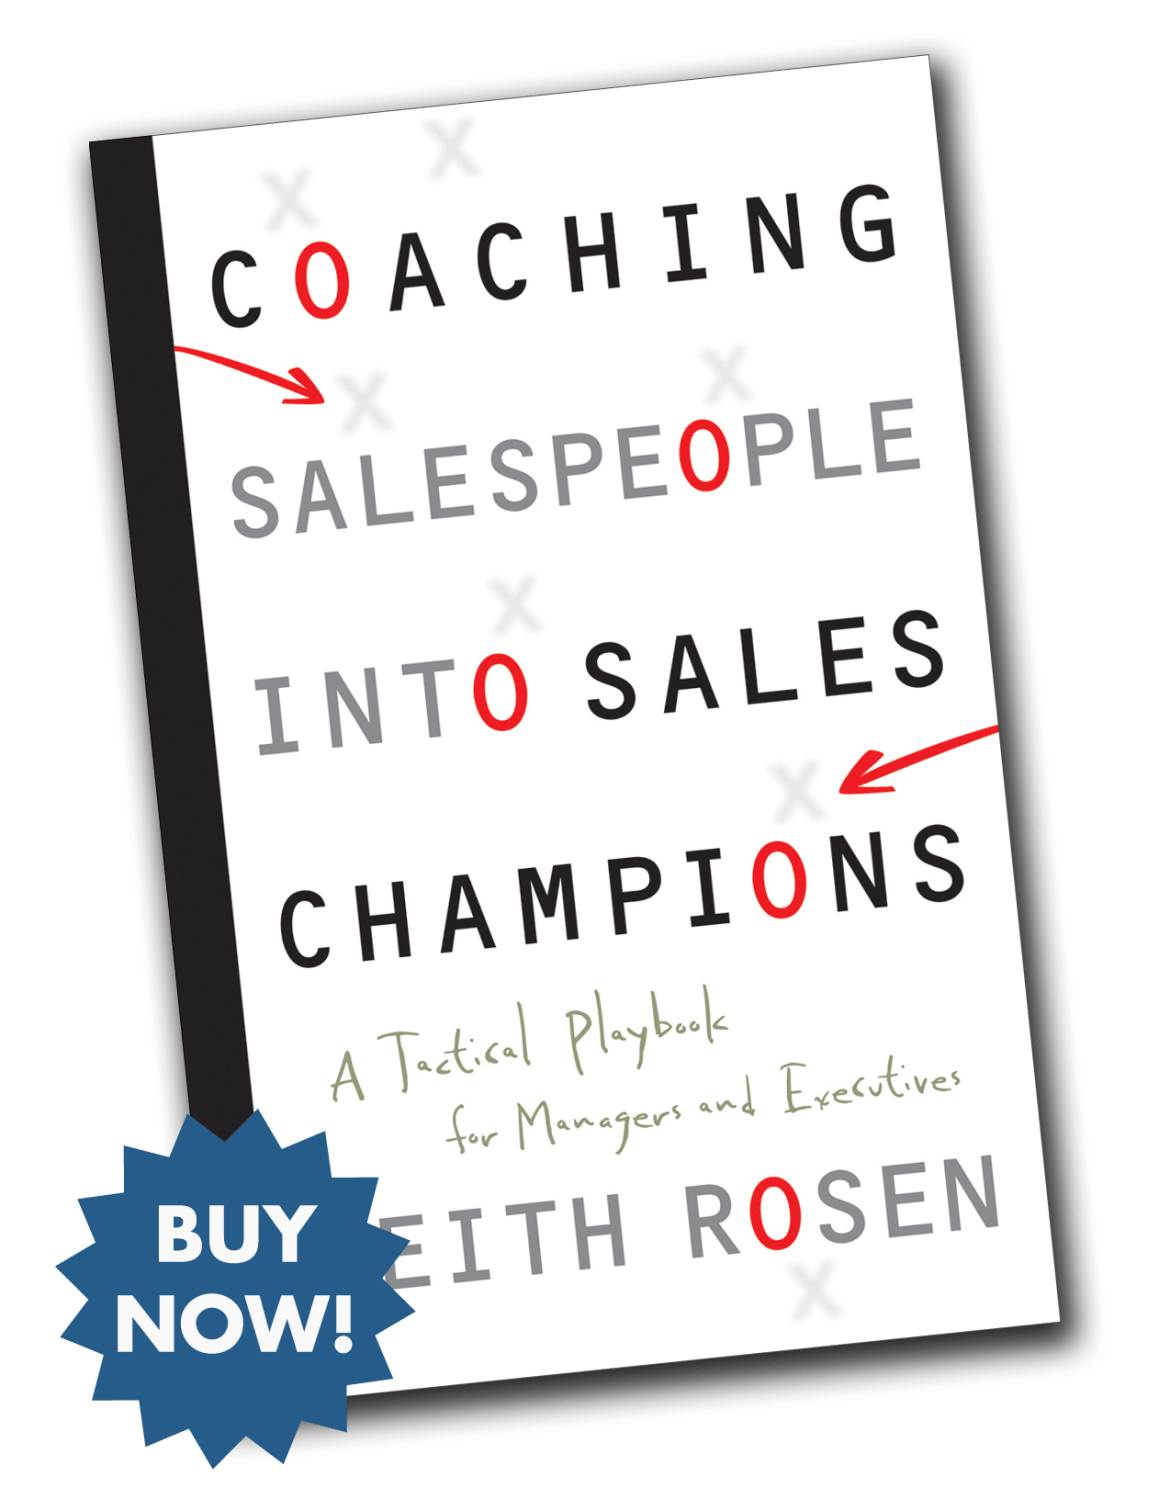 Buy Now - Coaching Salespeople Into Sales Champions